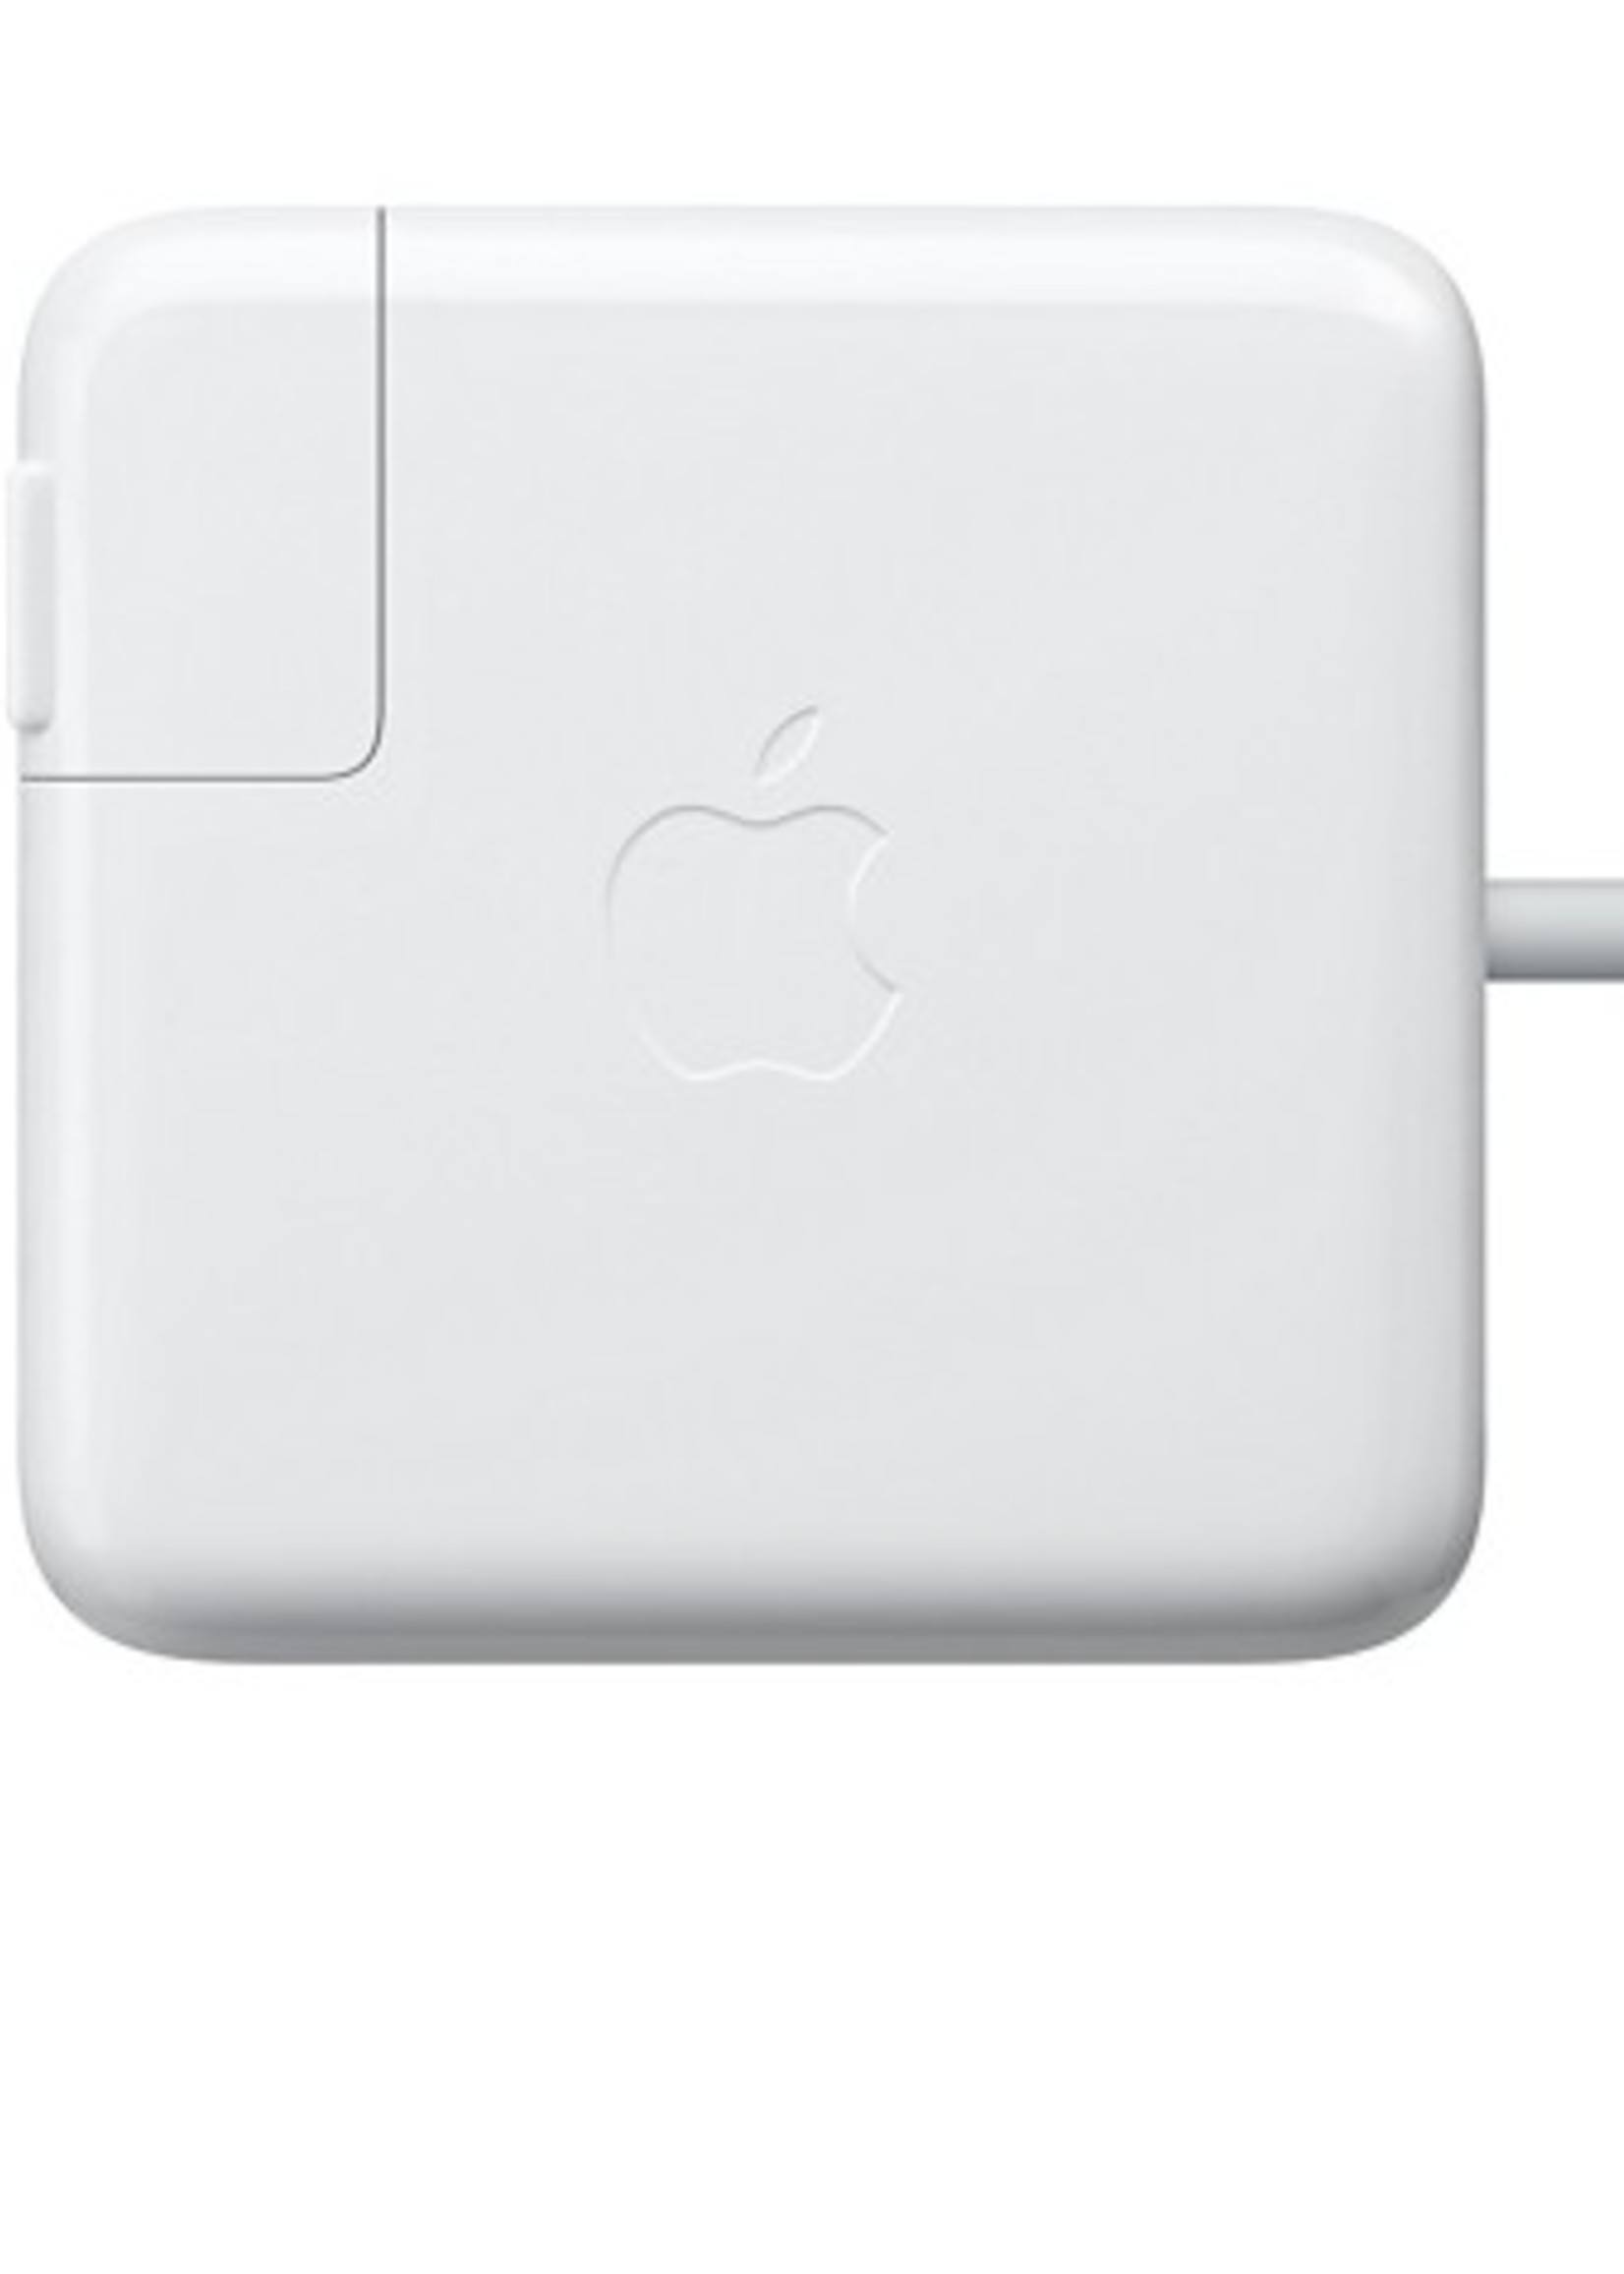 Apple 85W MagSafe Power Adapter (Old 15-inch MacBook Pro)